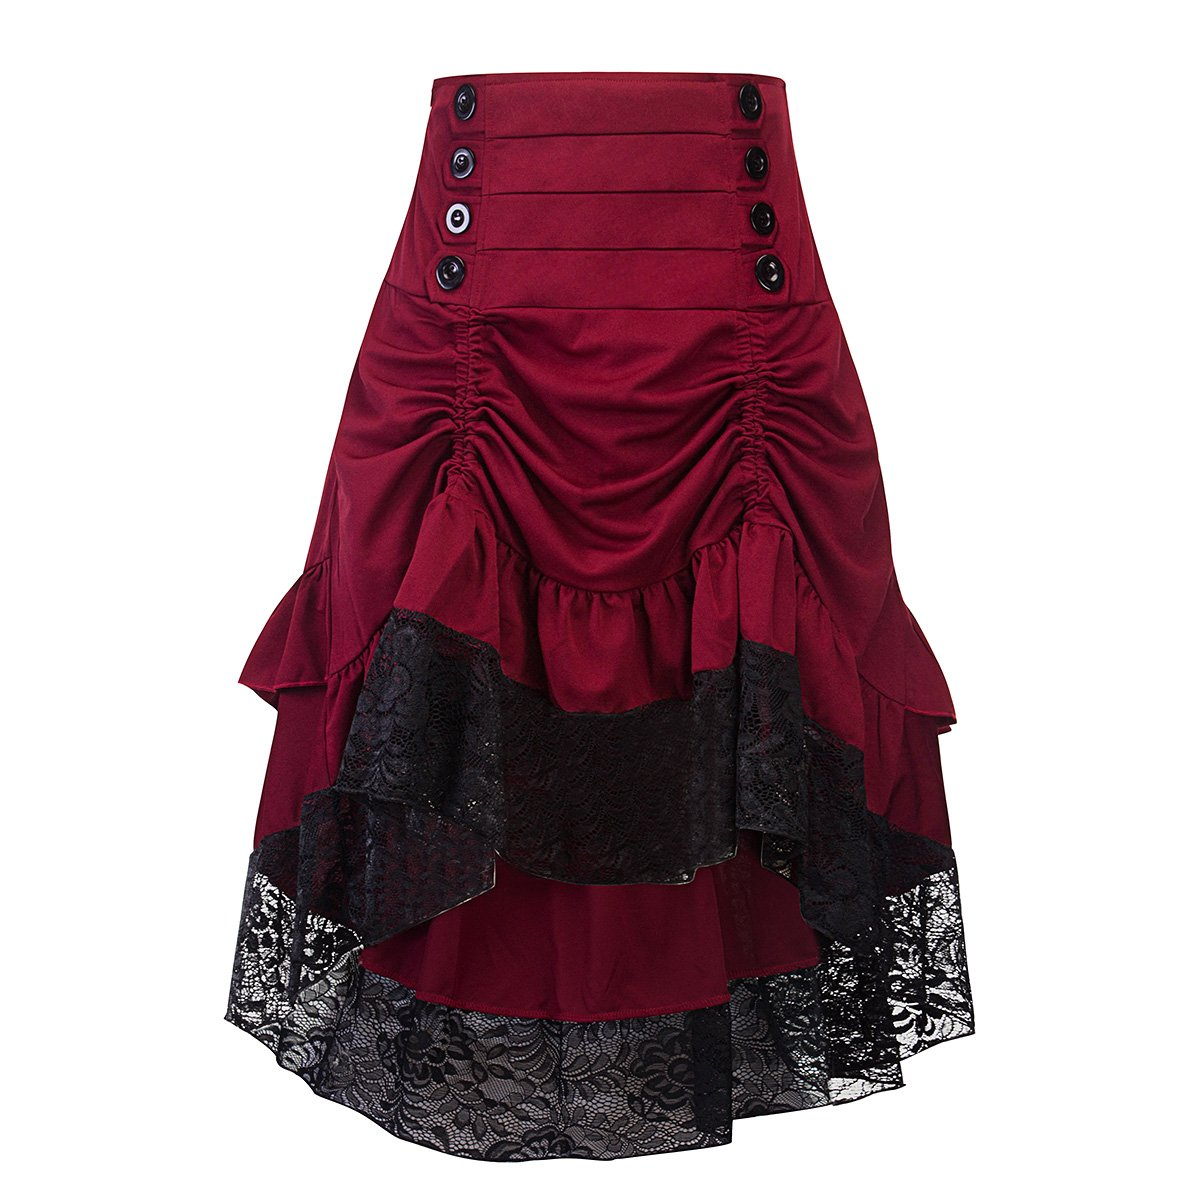 CZ Women Ladies Solid Color High Low Gothic Steampunk Lace Party Skirt